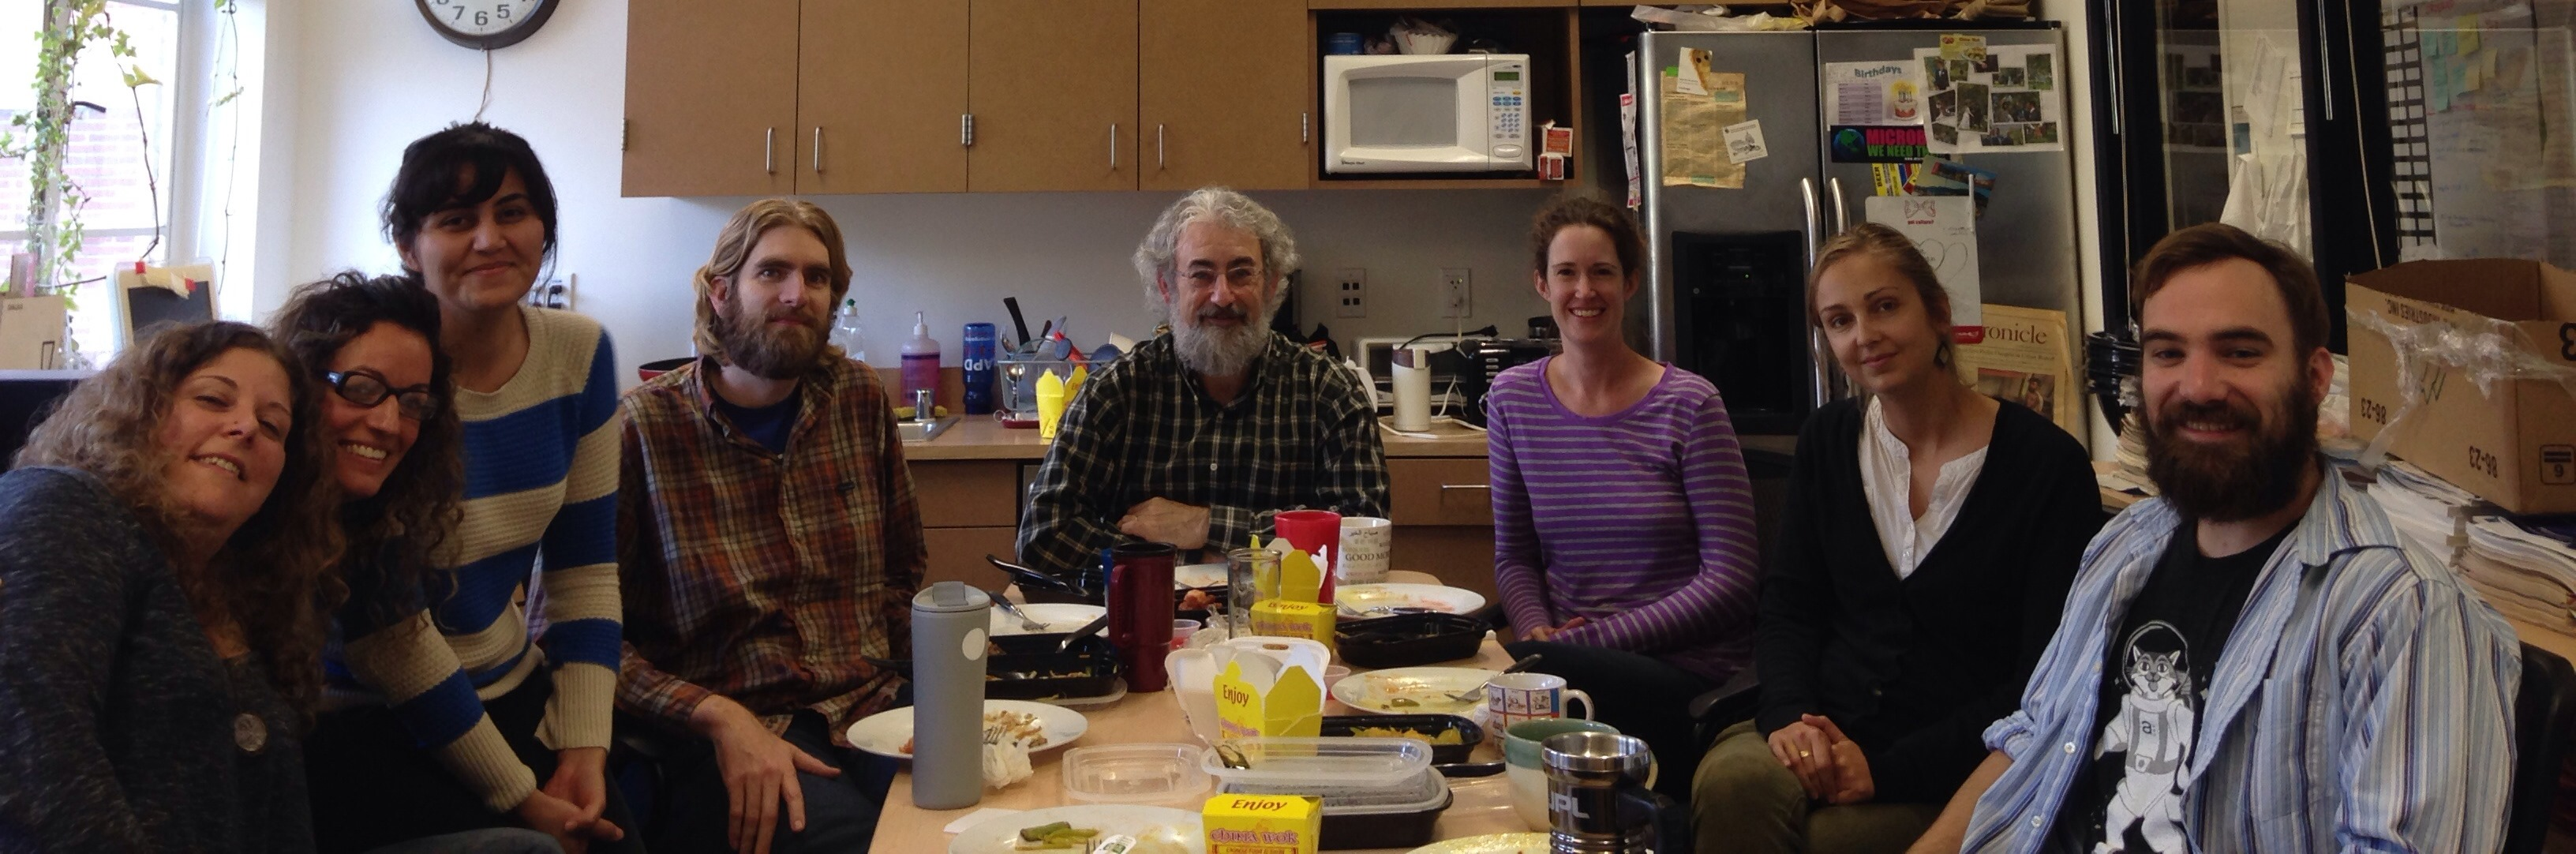 Typical lab meeting, Photo by David Needham, January 2015